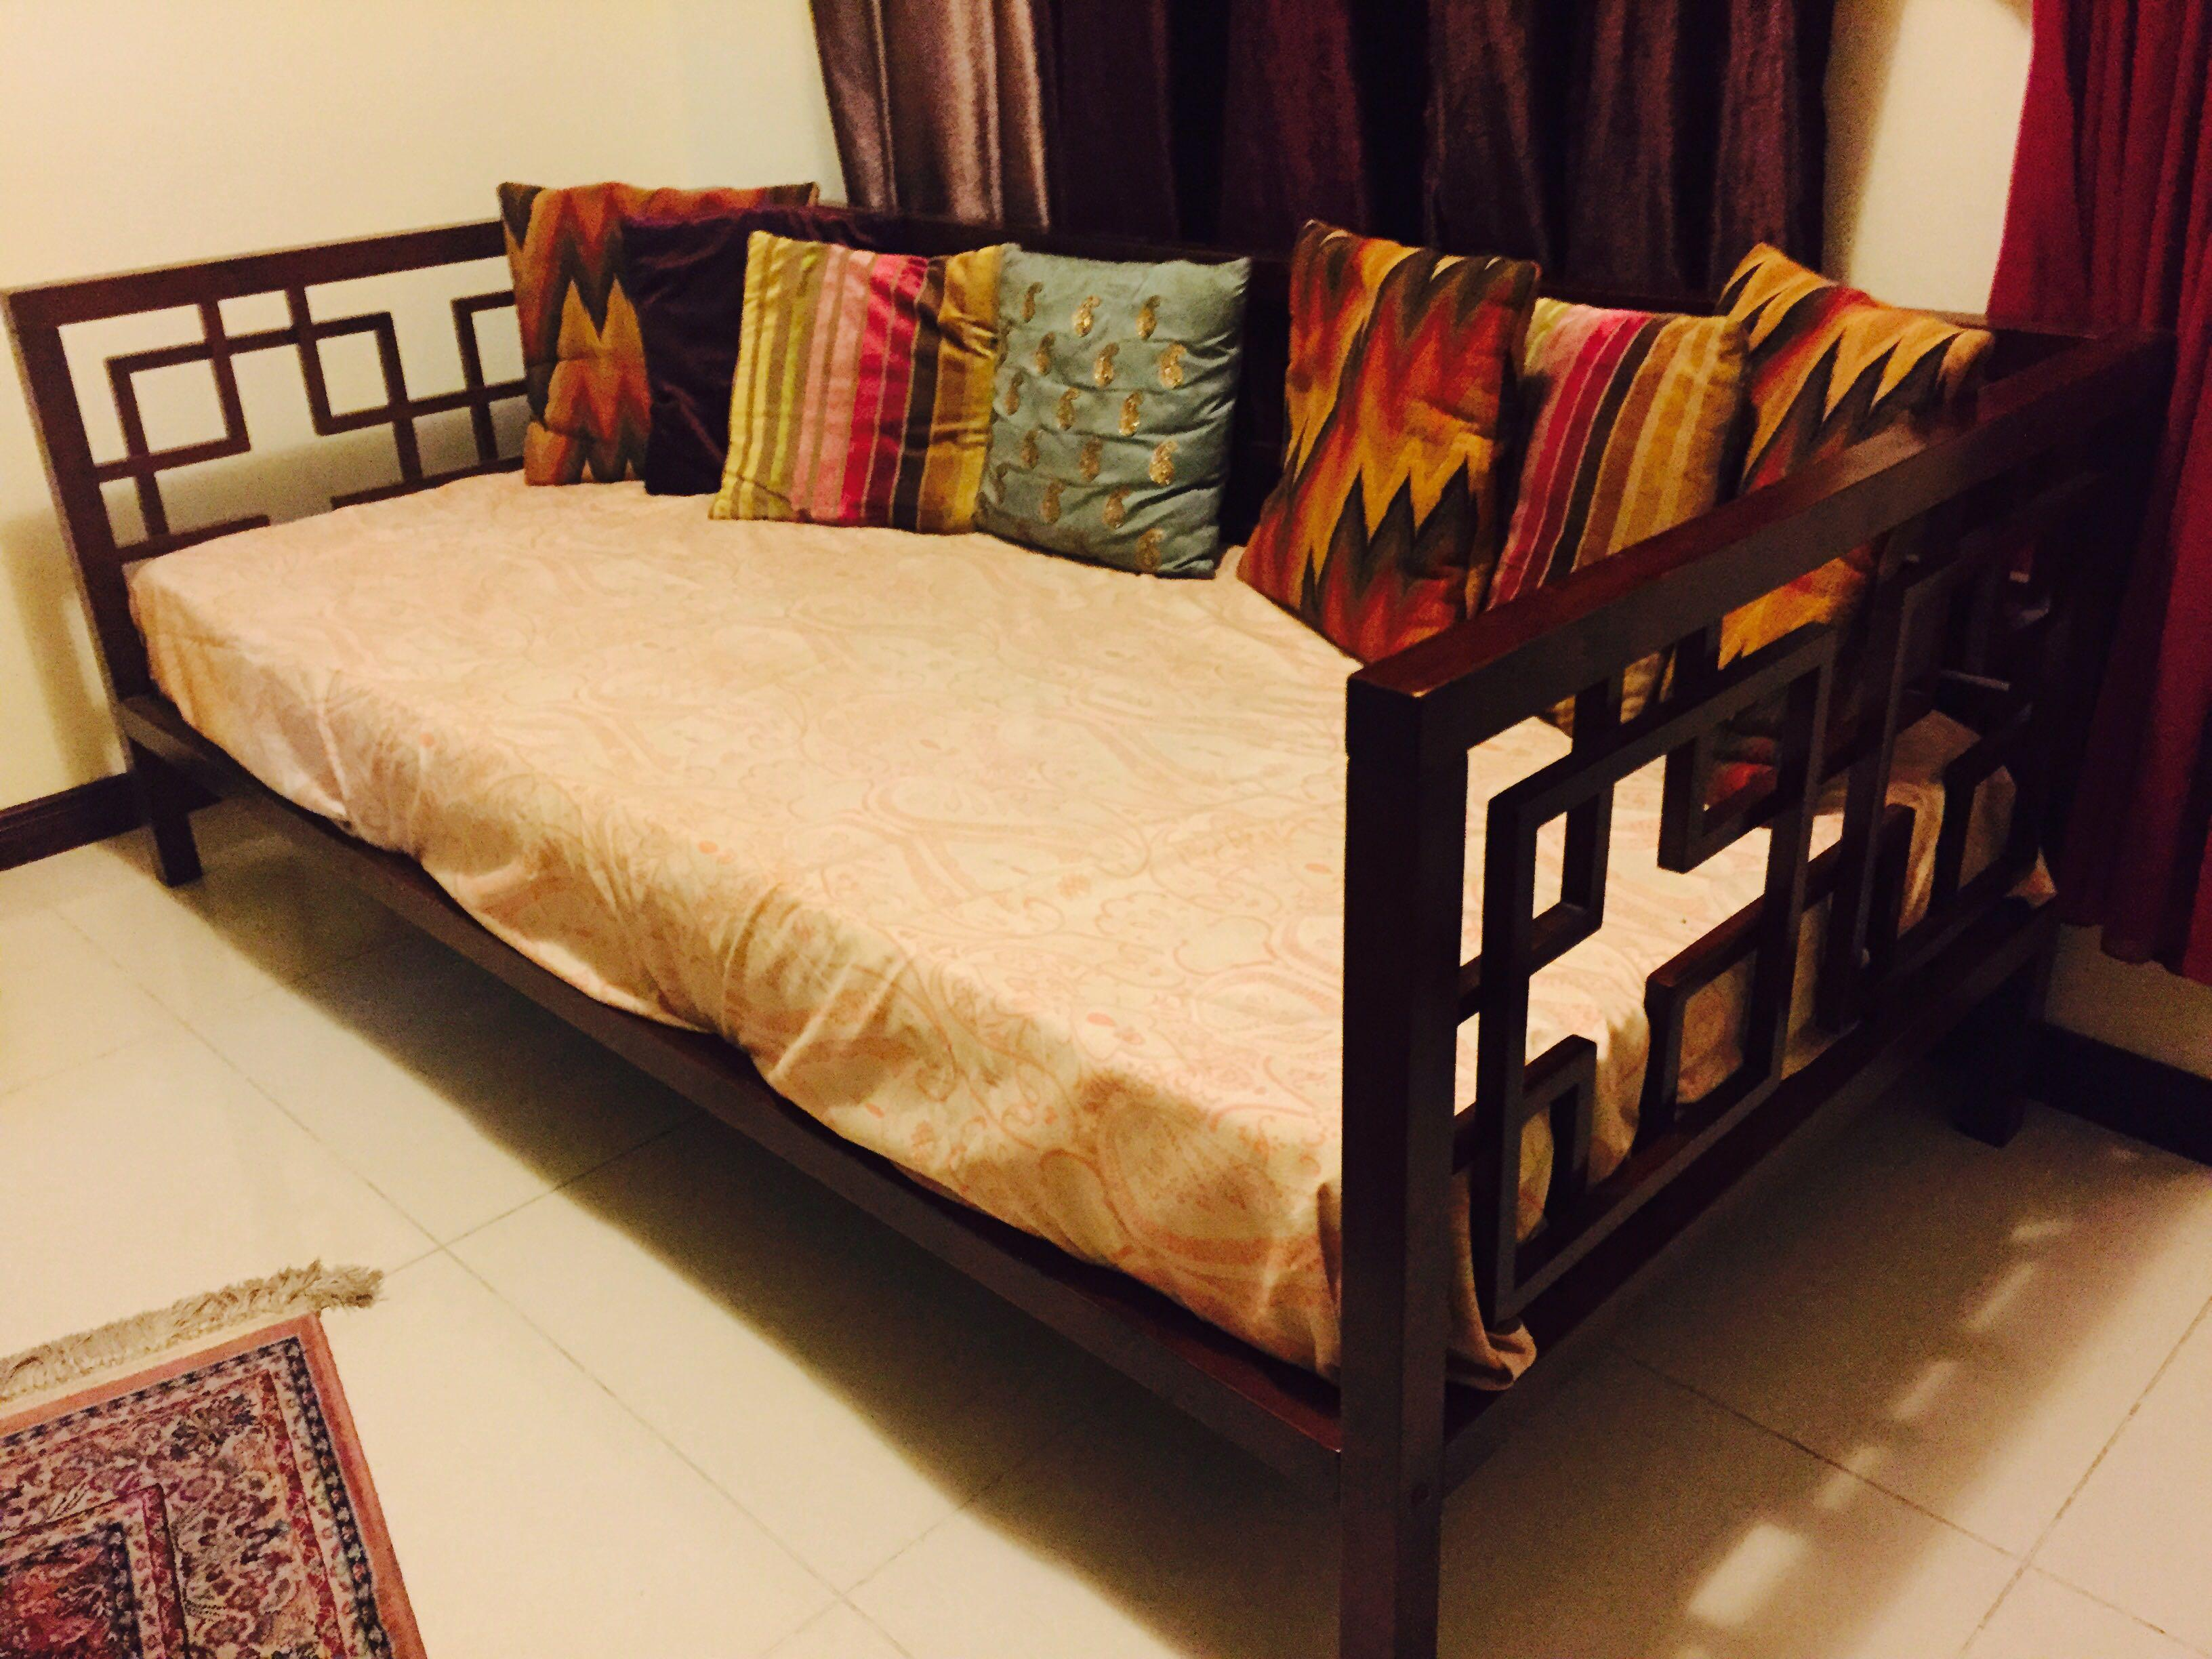 Le Information Bed Like Sofa 90 X 180 From